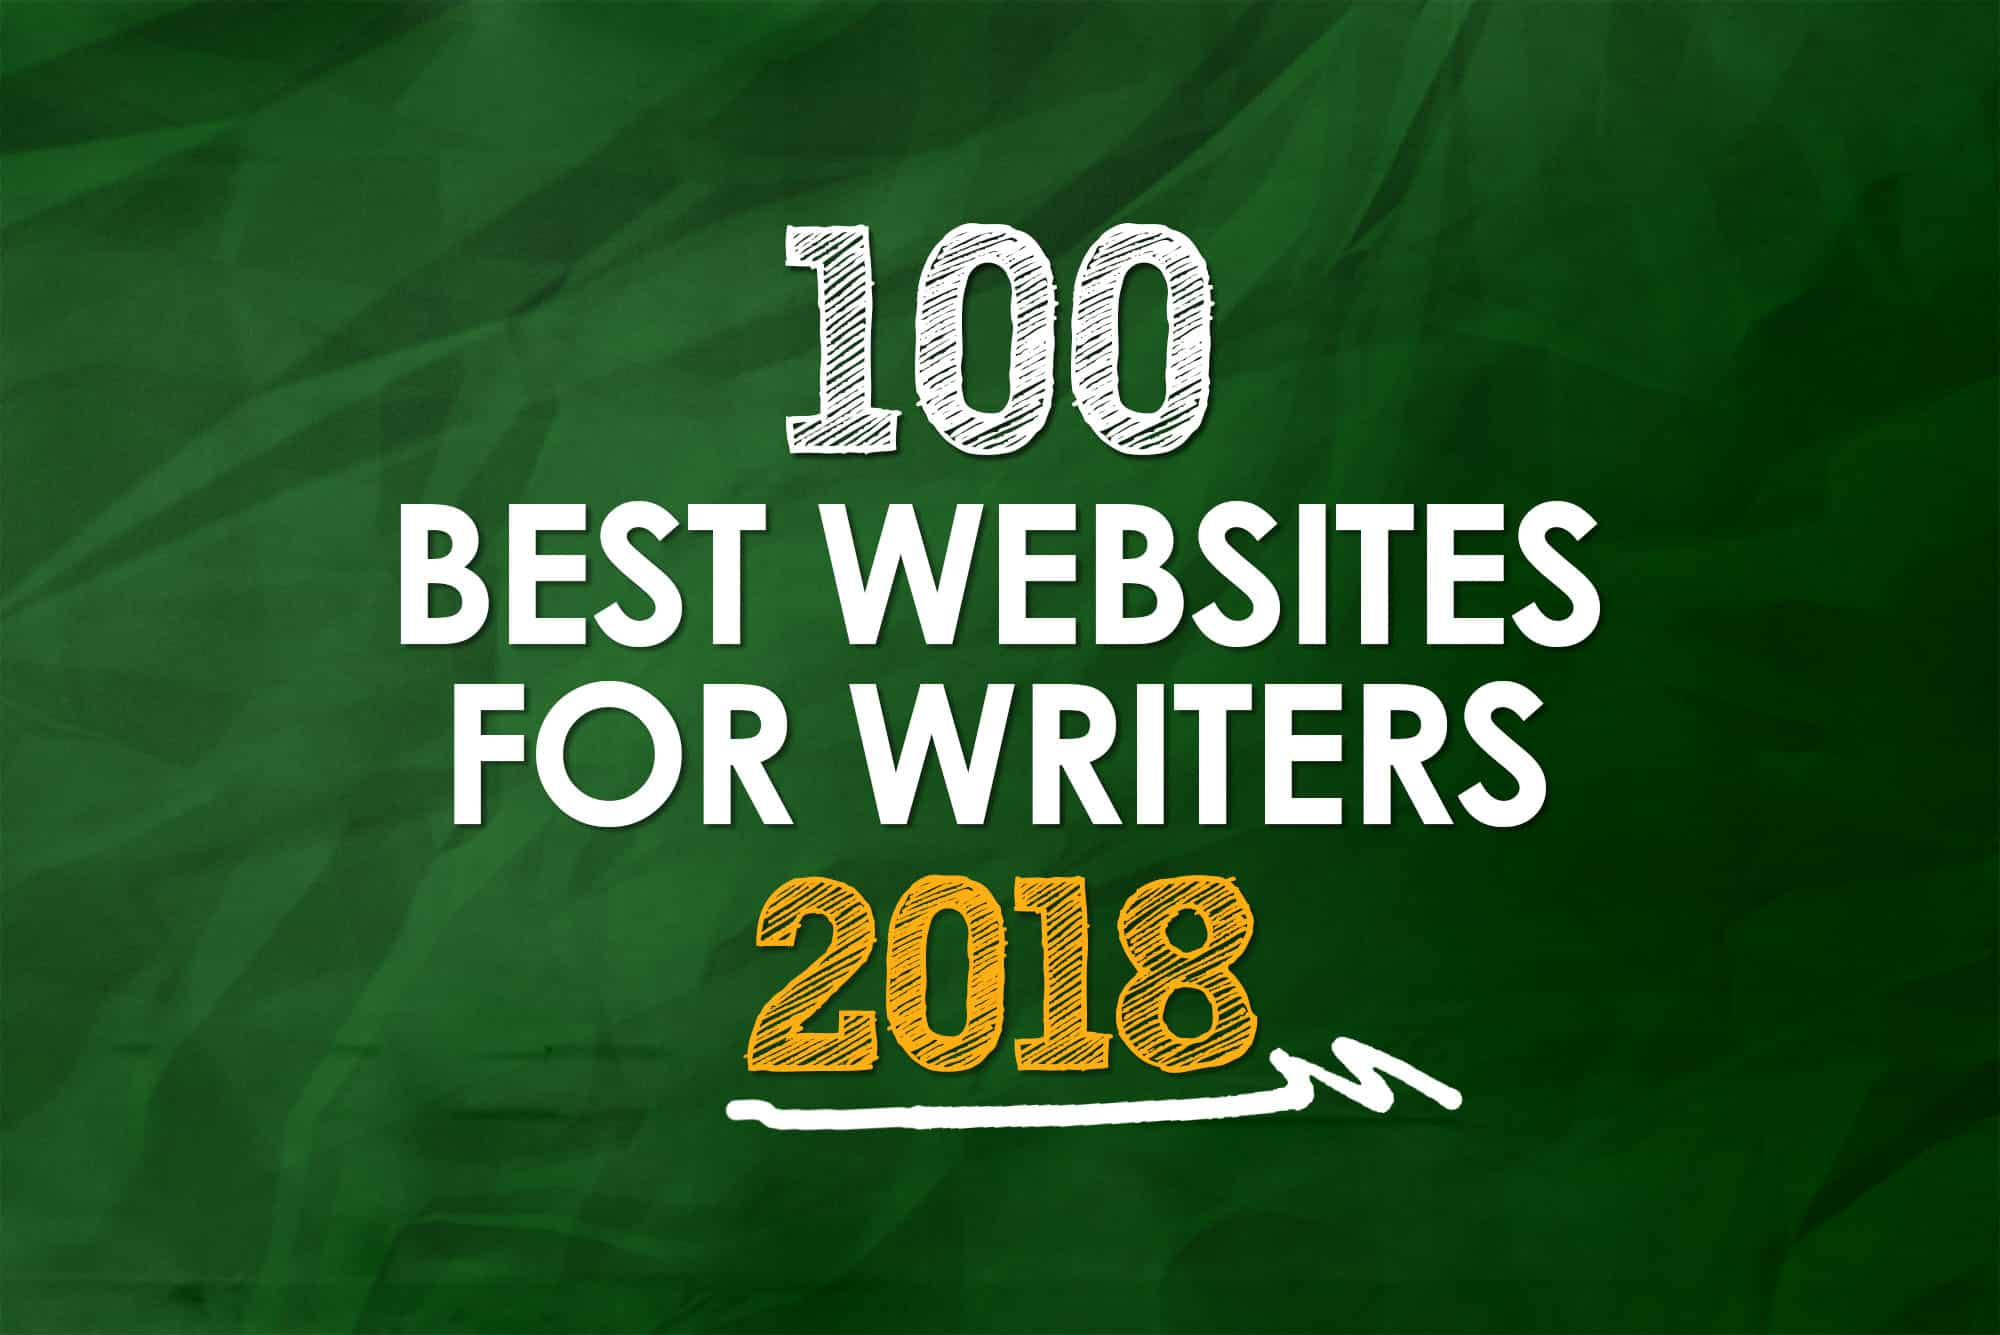 100 Best Writing Websites: 2018 Edition